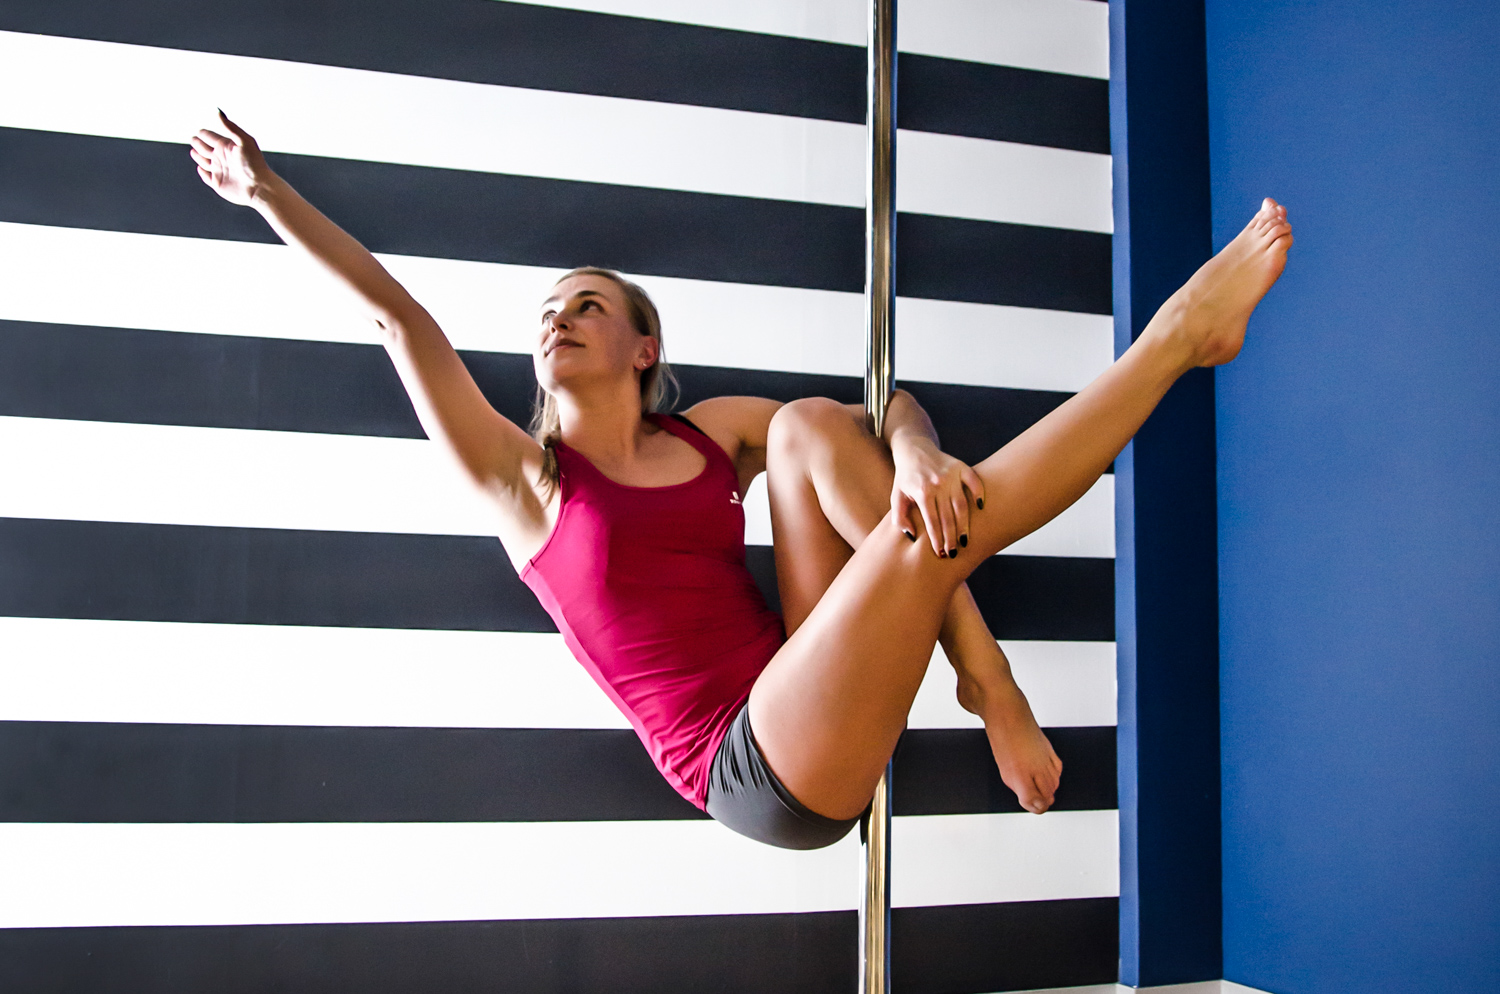 Martyna - Pole Dance